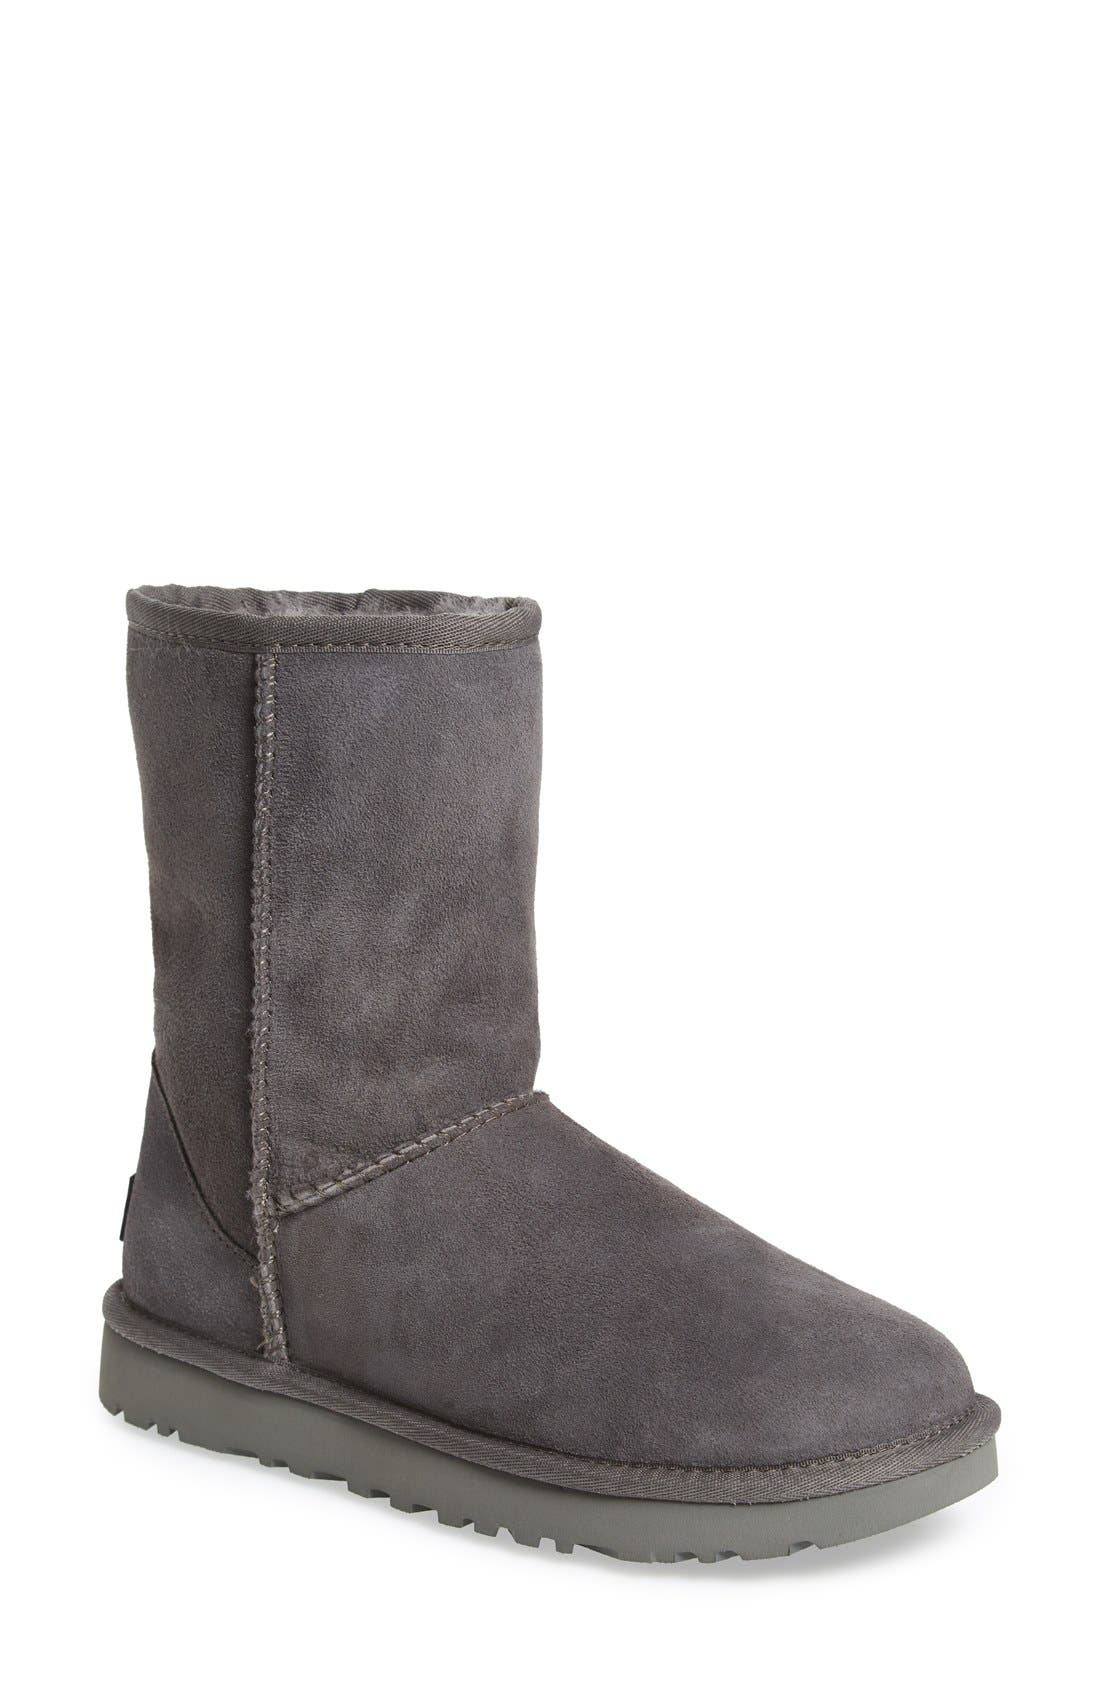 'Classic II' Genuine Shearling Lined Short Boot,                             Main thumbnail 1, color,                             Grey Suede